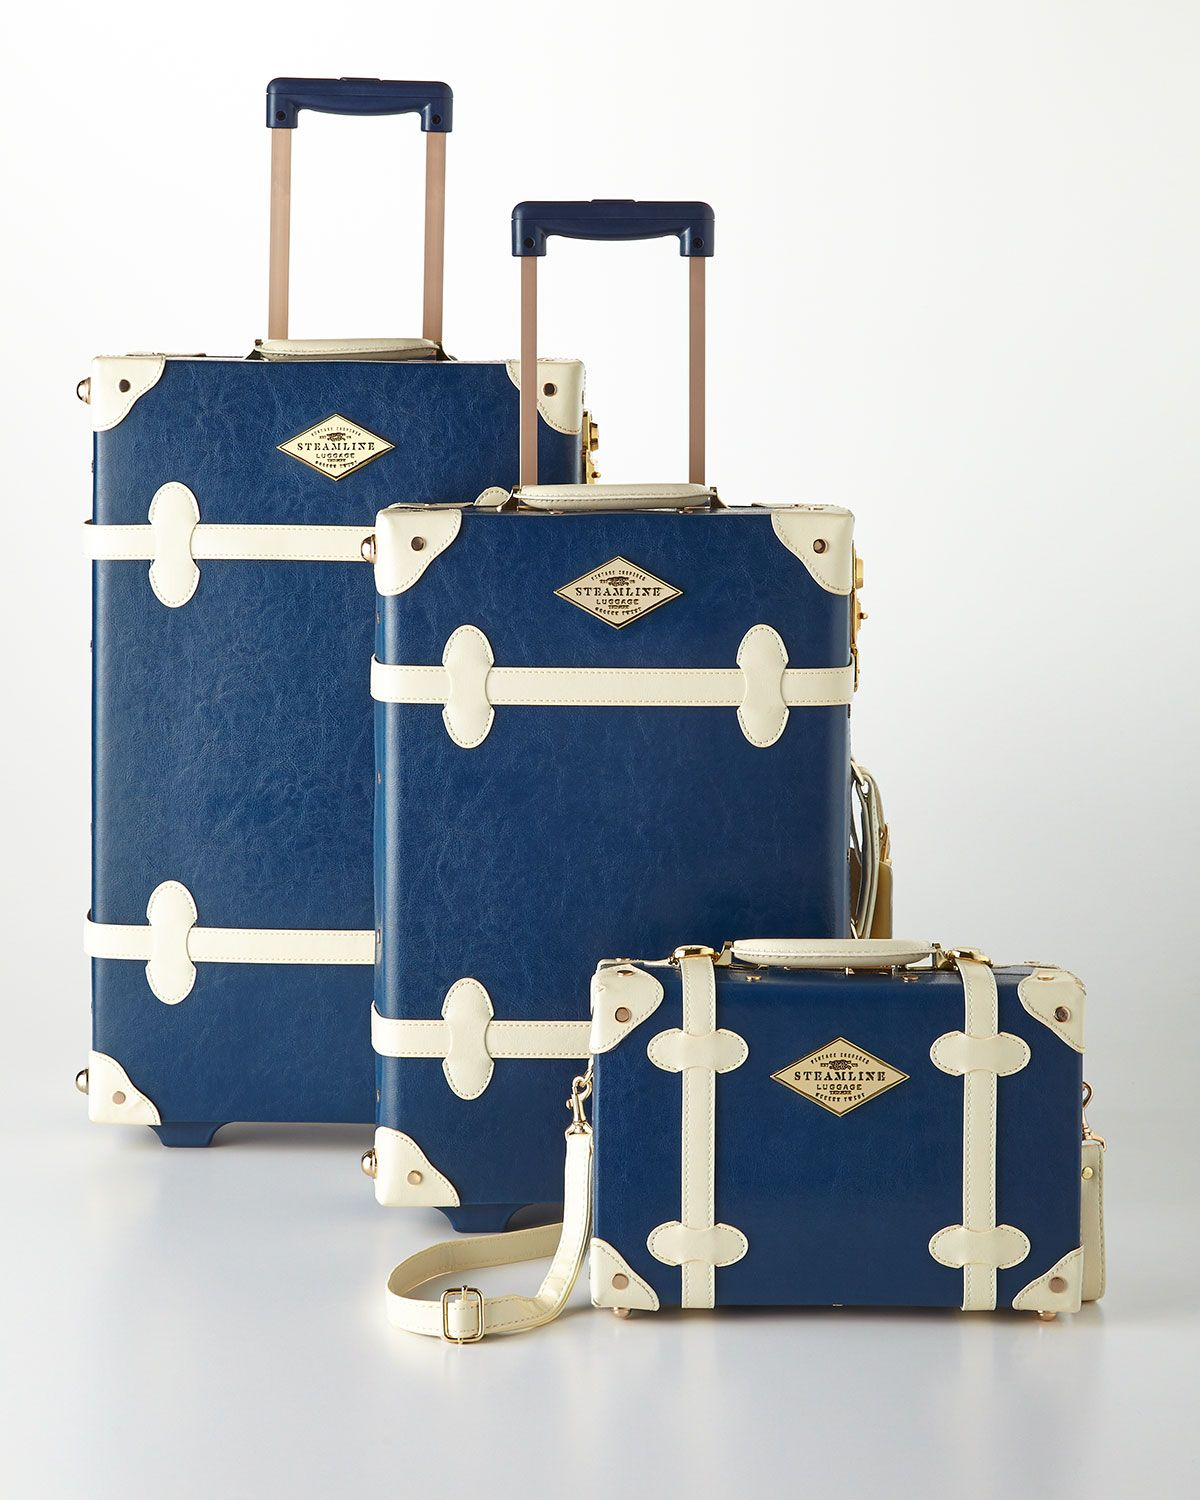 Blue entrepreneur luggage travel luggage carry on bags